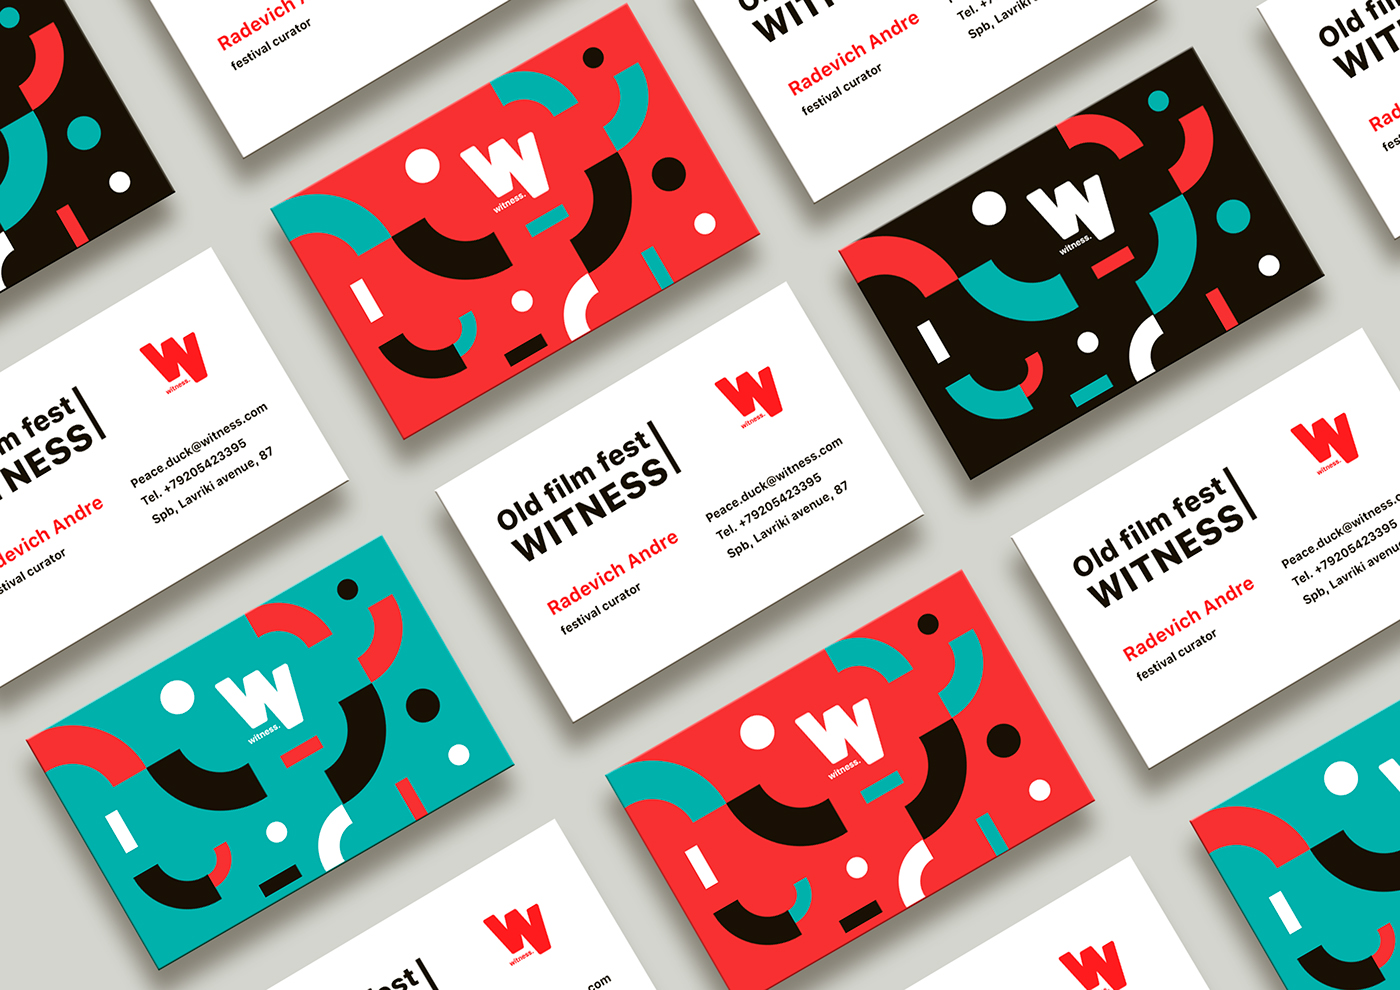 Colorful business cards inspiration - CardFaves